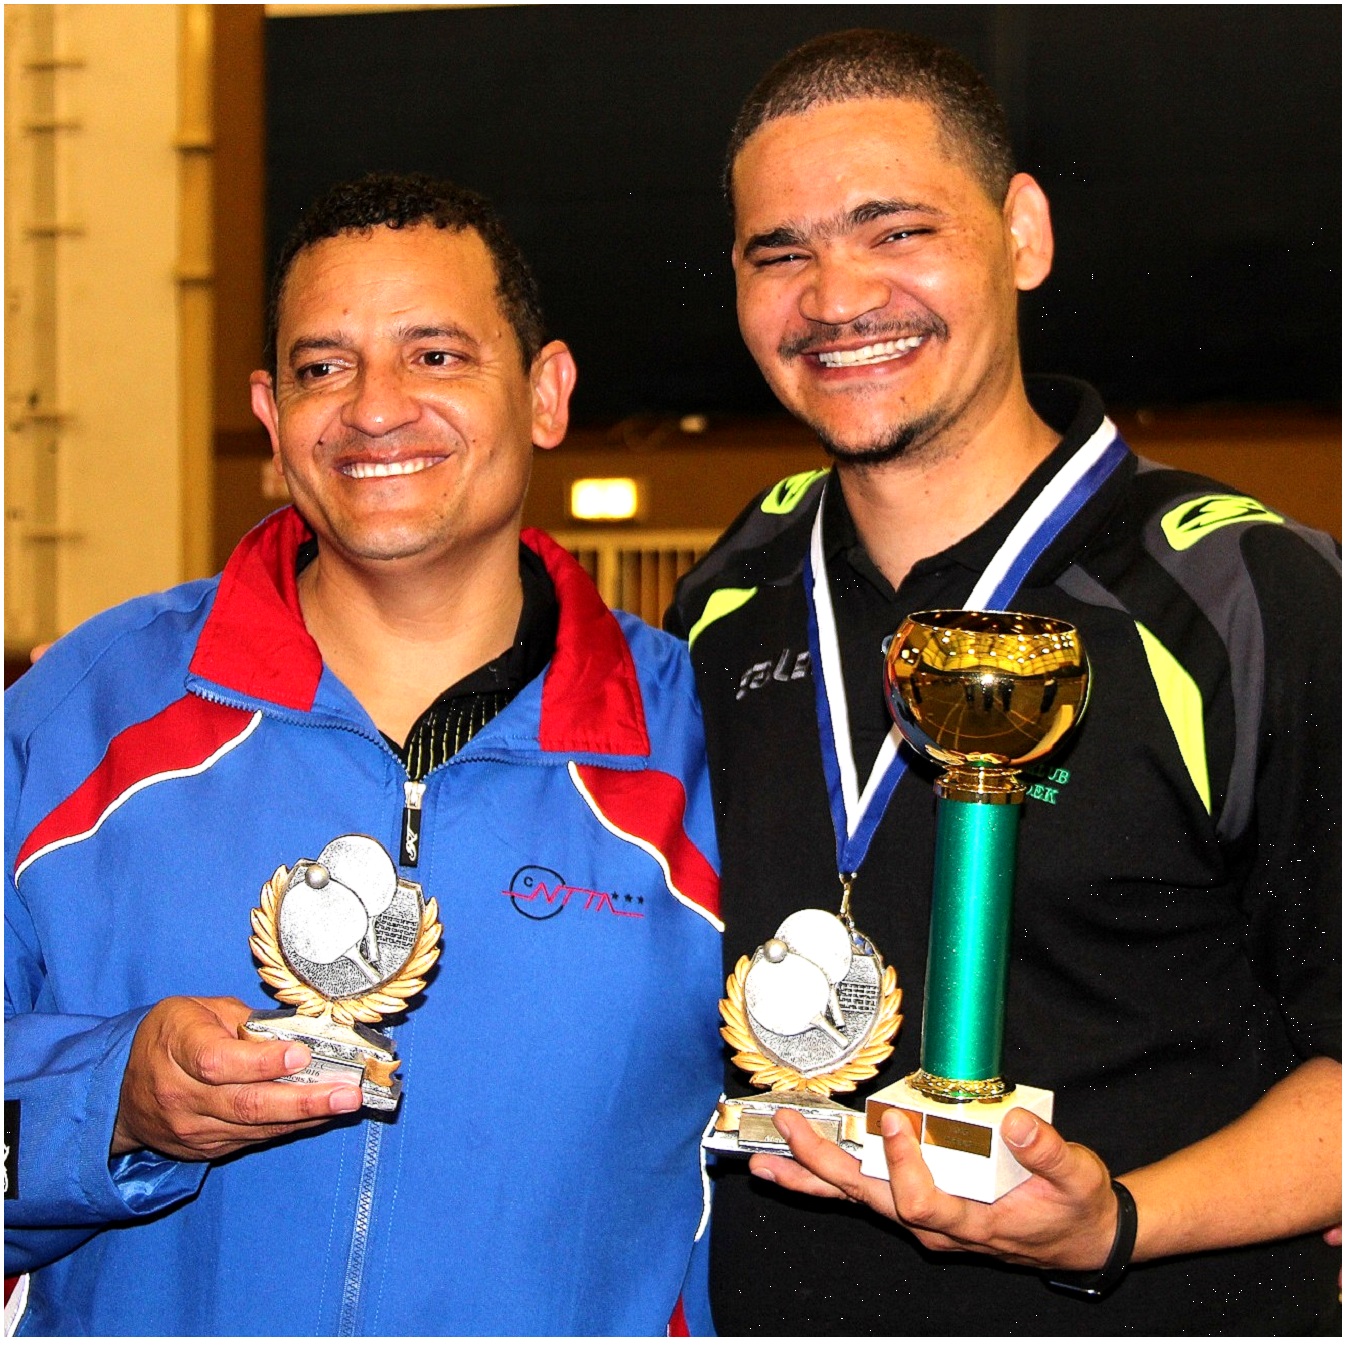 Wayne Green Namibia's new table tennis champ